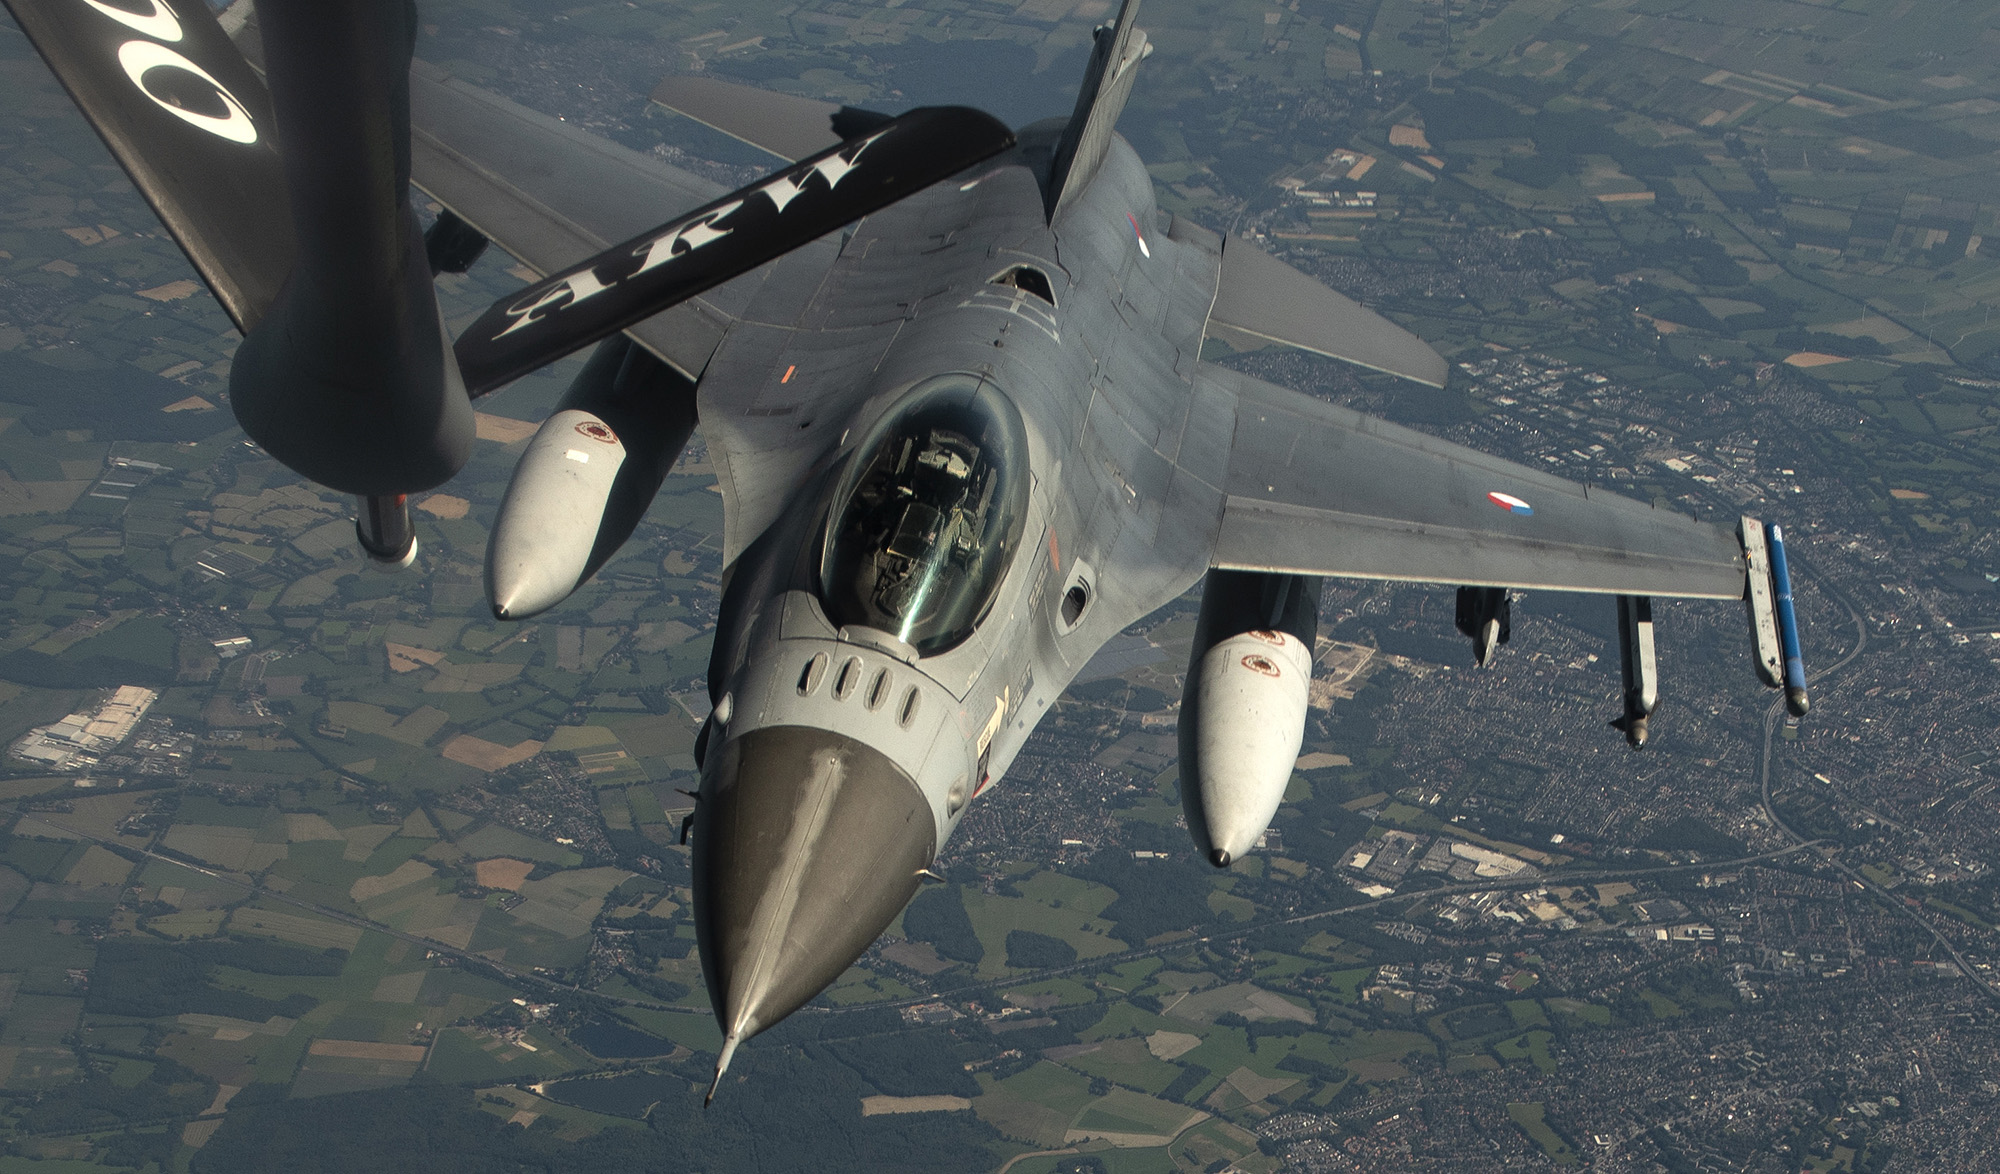 A Royal Netherlands air force F-16 Fighting Falcon approaches a U.S. Air Force KC-135 Stratotanker for refueling during a NATO Multinational Air Group exercise over Germany, June 25, 2020. (Airman 1st Class Jessi Monte/Air Force)